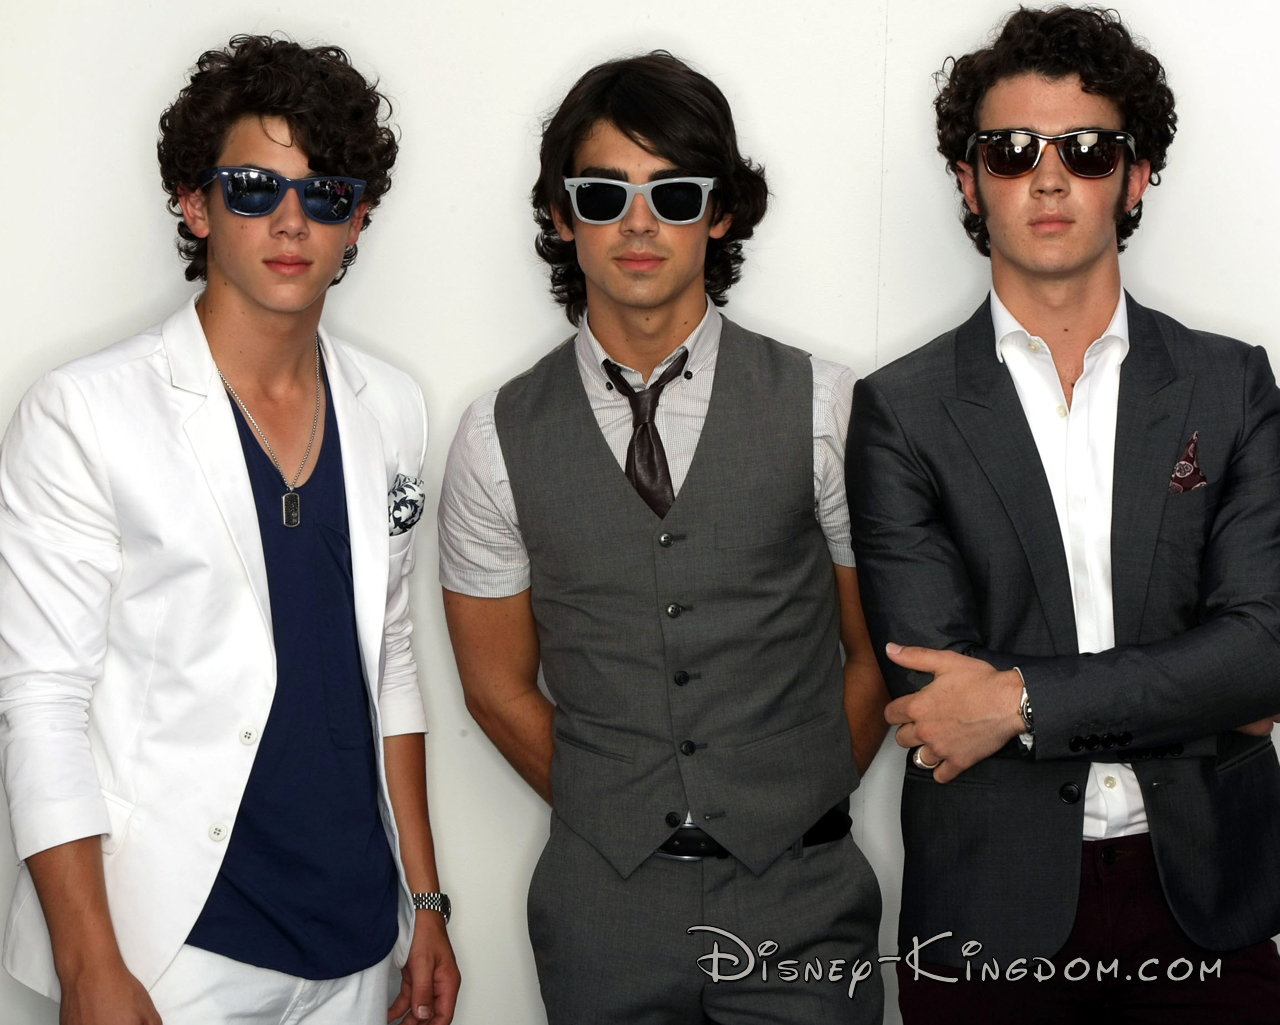 jonas brothers wallpaper